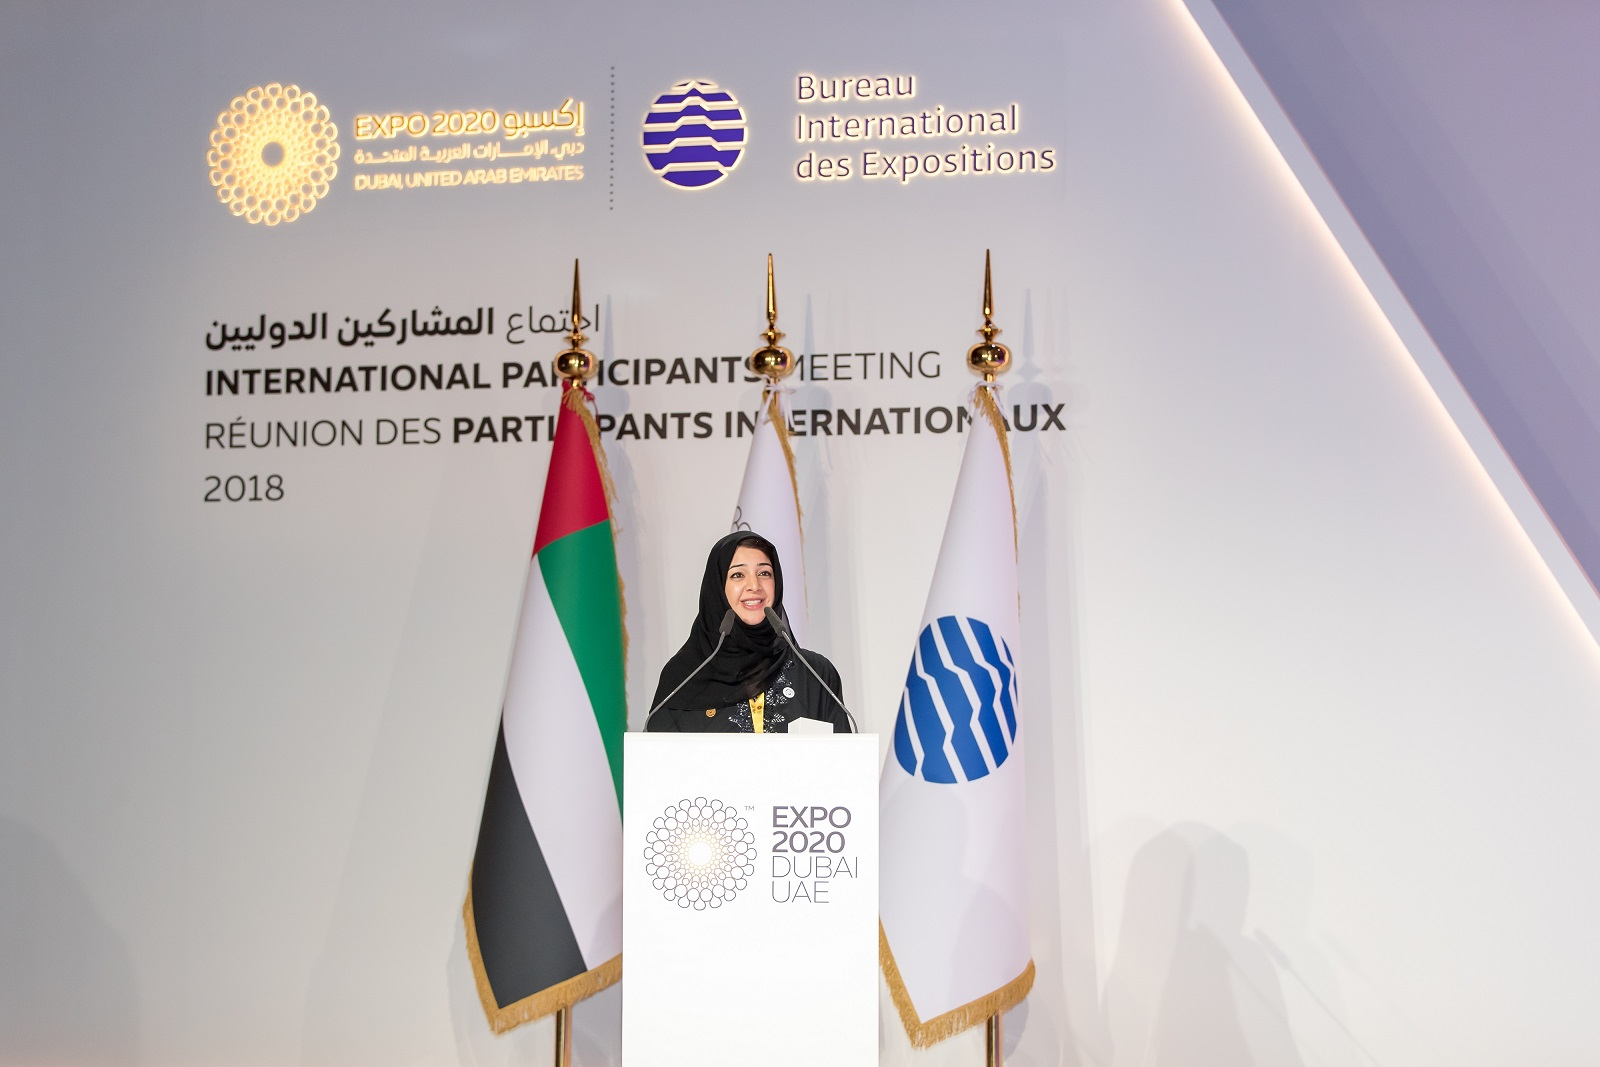 more than 600 delegates from around the world join expo 2020 dubai's international participants meeting